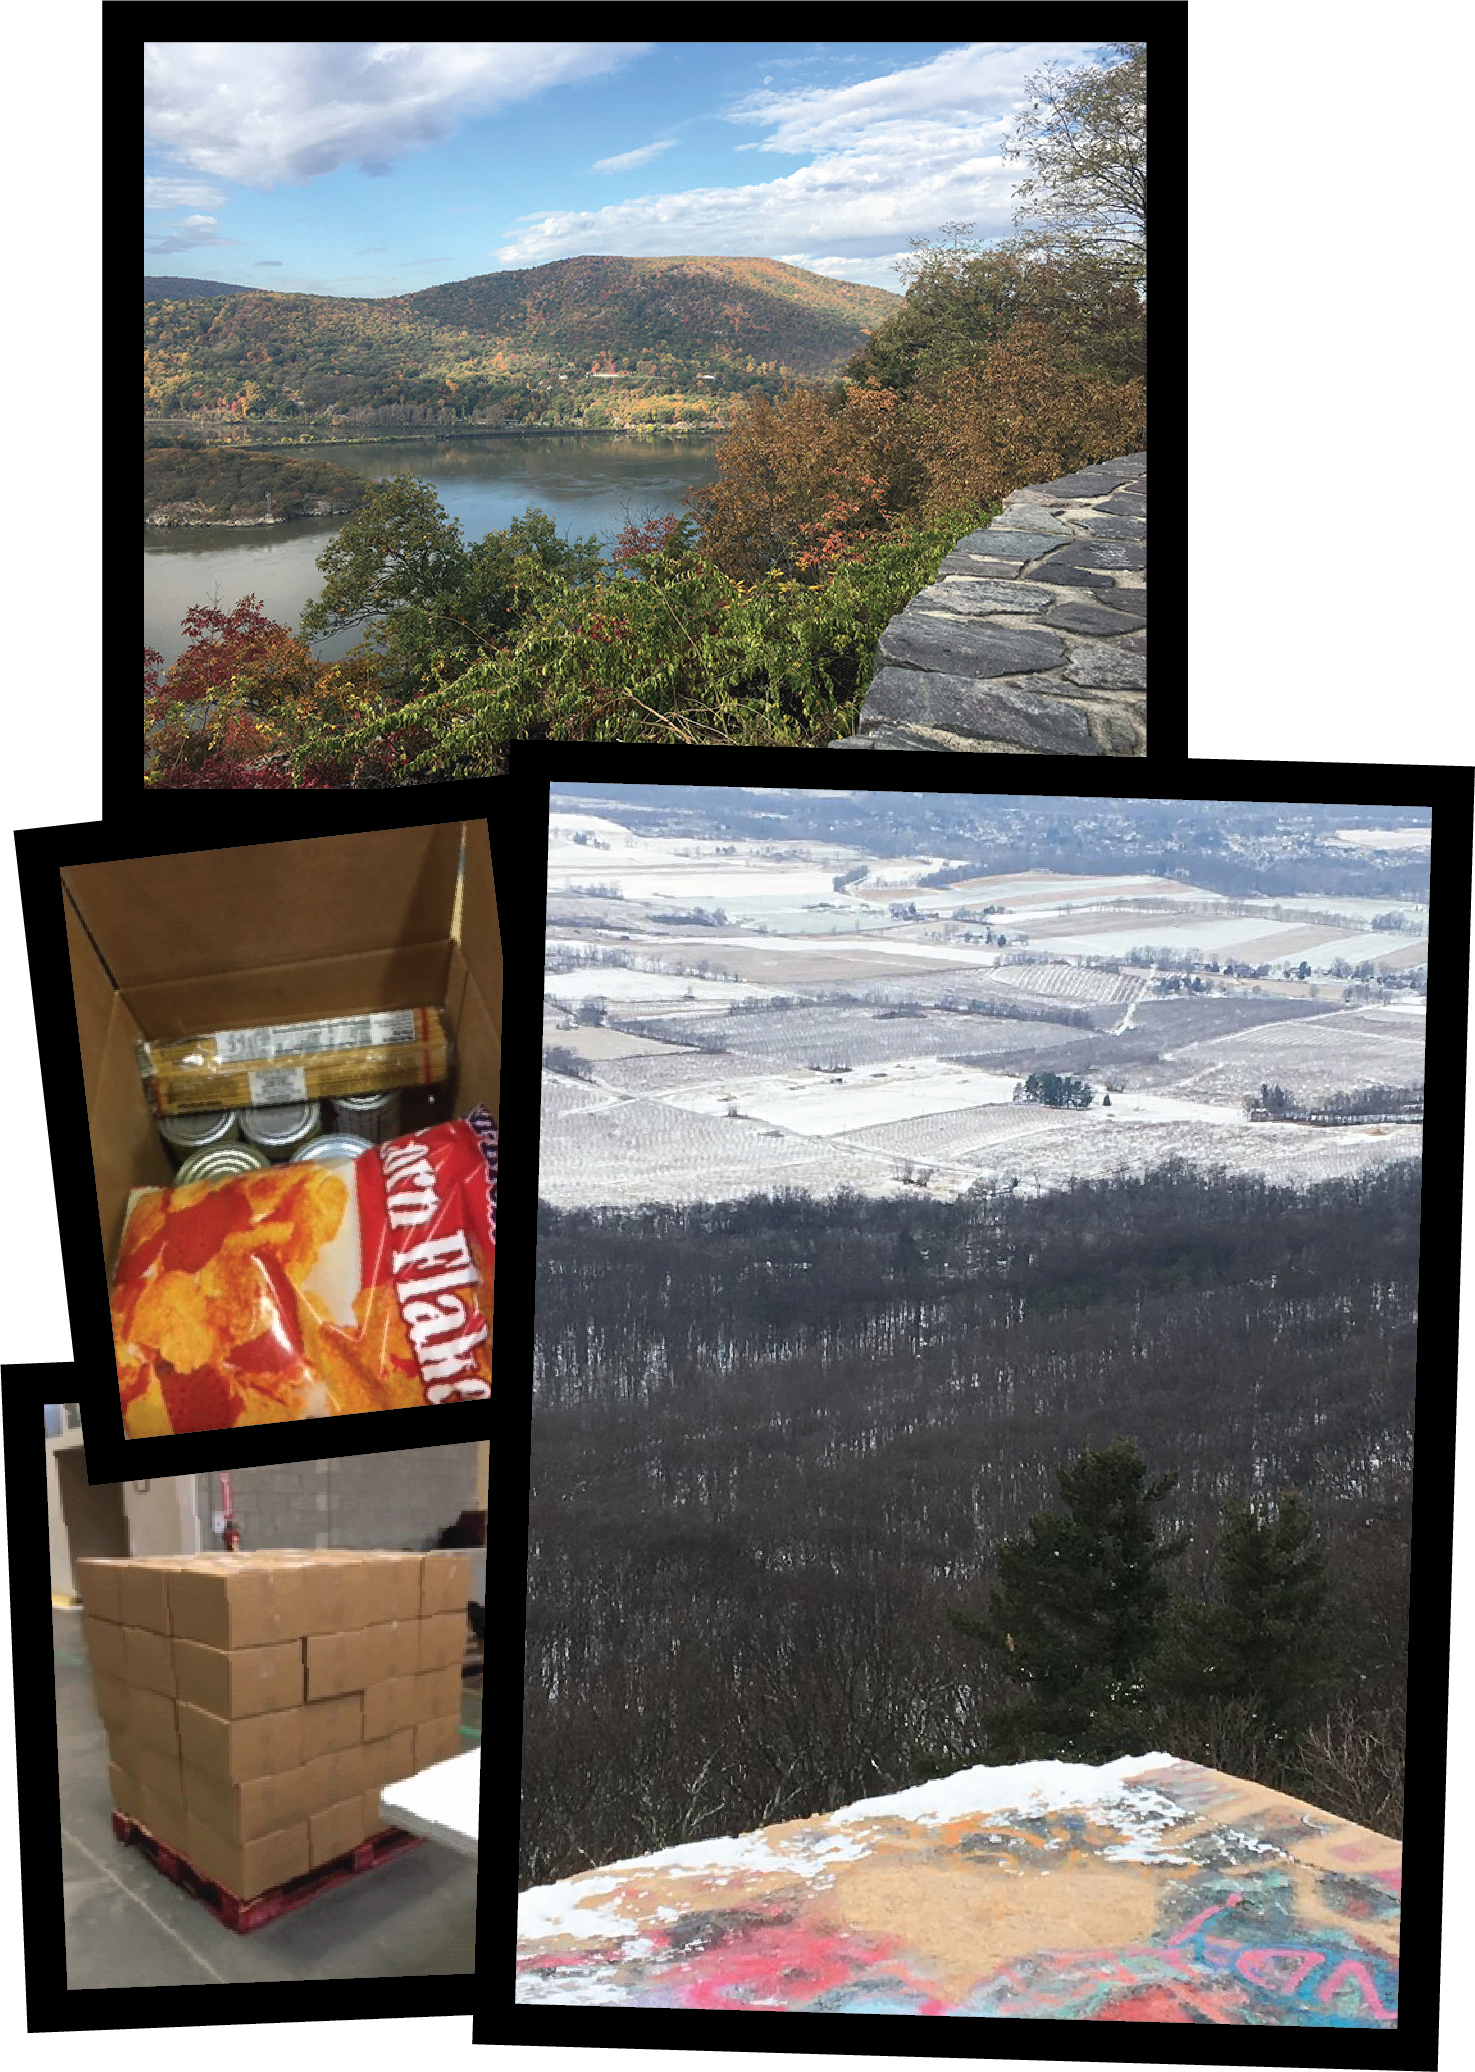 There trees in a snow field, snacks in a box, a lake and mountains, and boxes in the warehouse